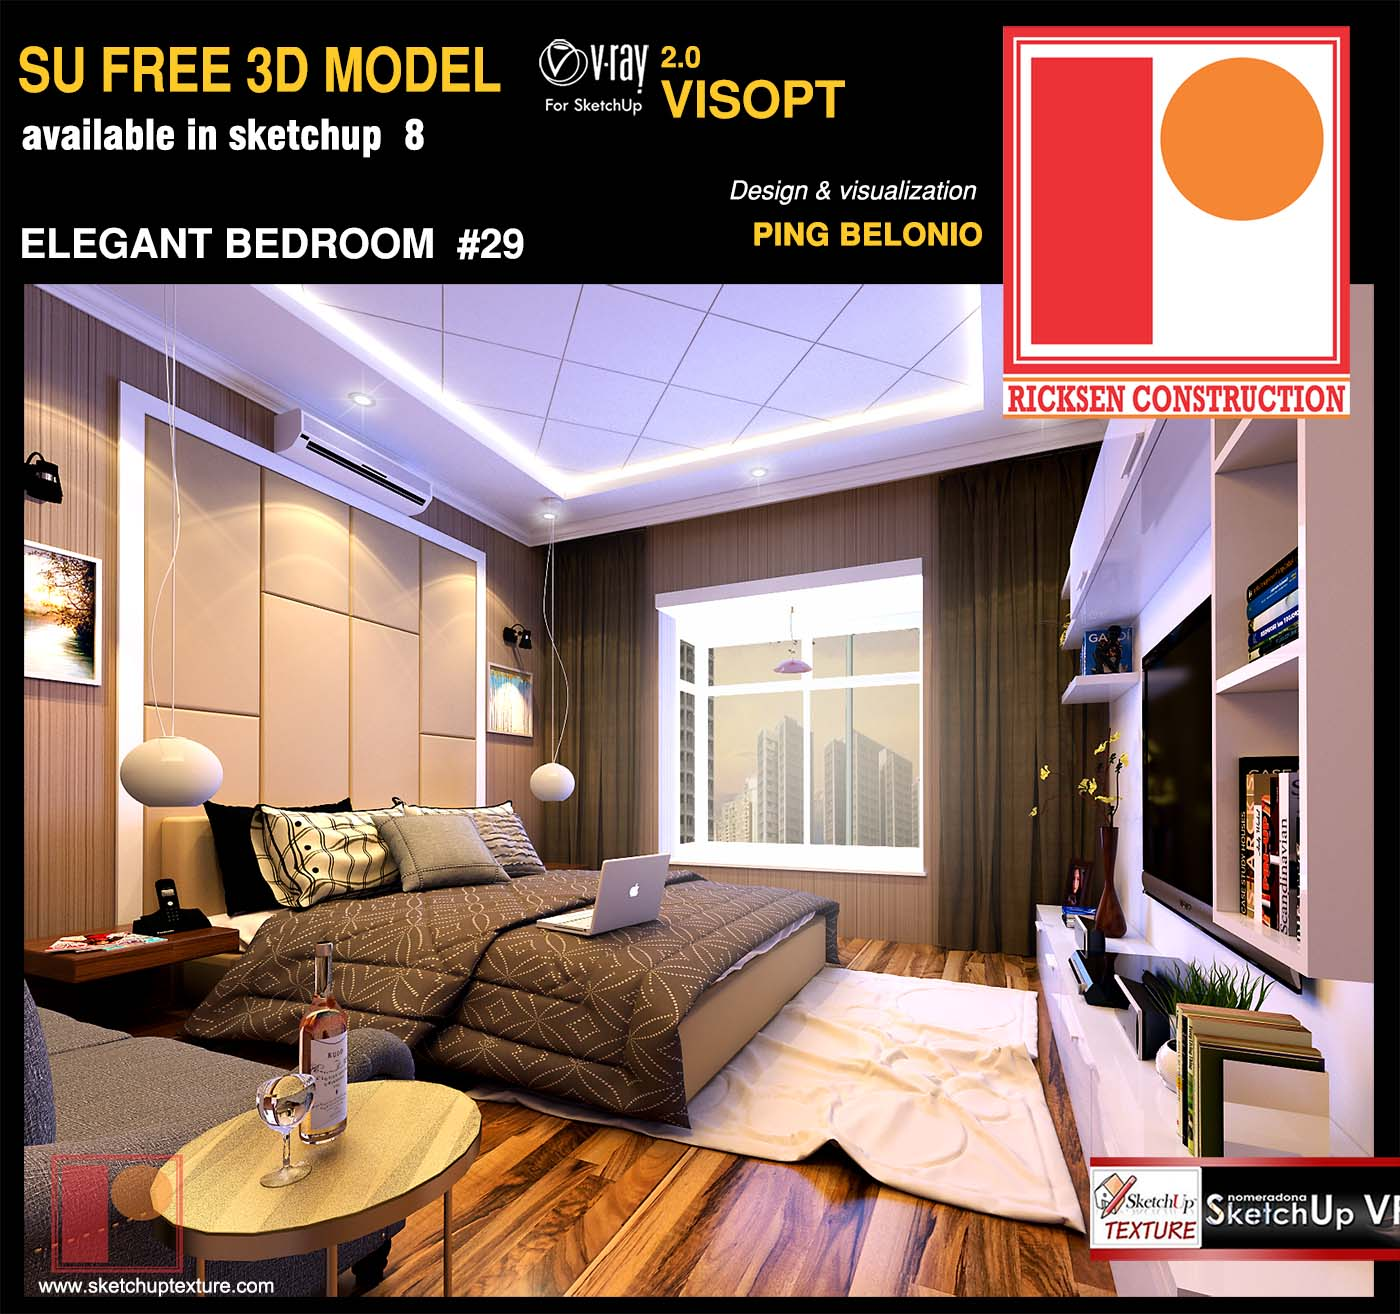 Superb Free Sketchup Model Elegant Bedroom By Ping Belonio Vray Interior Visopt